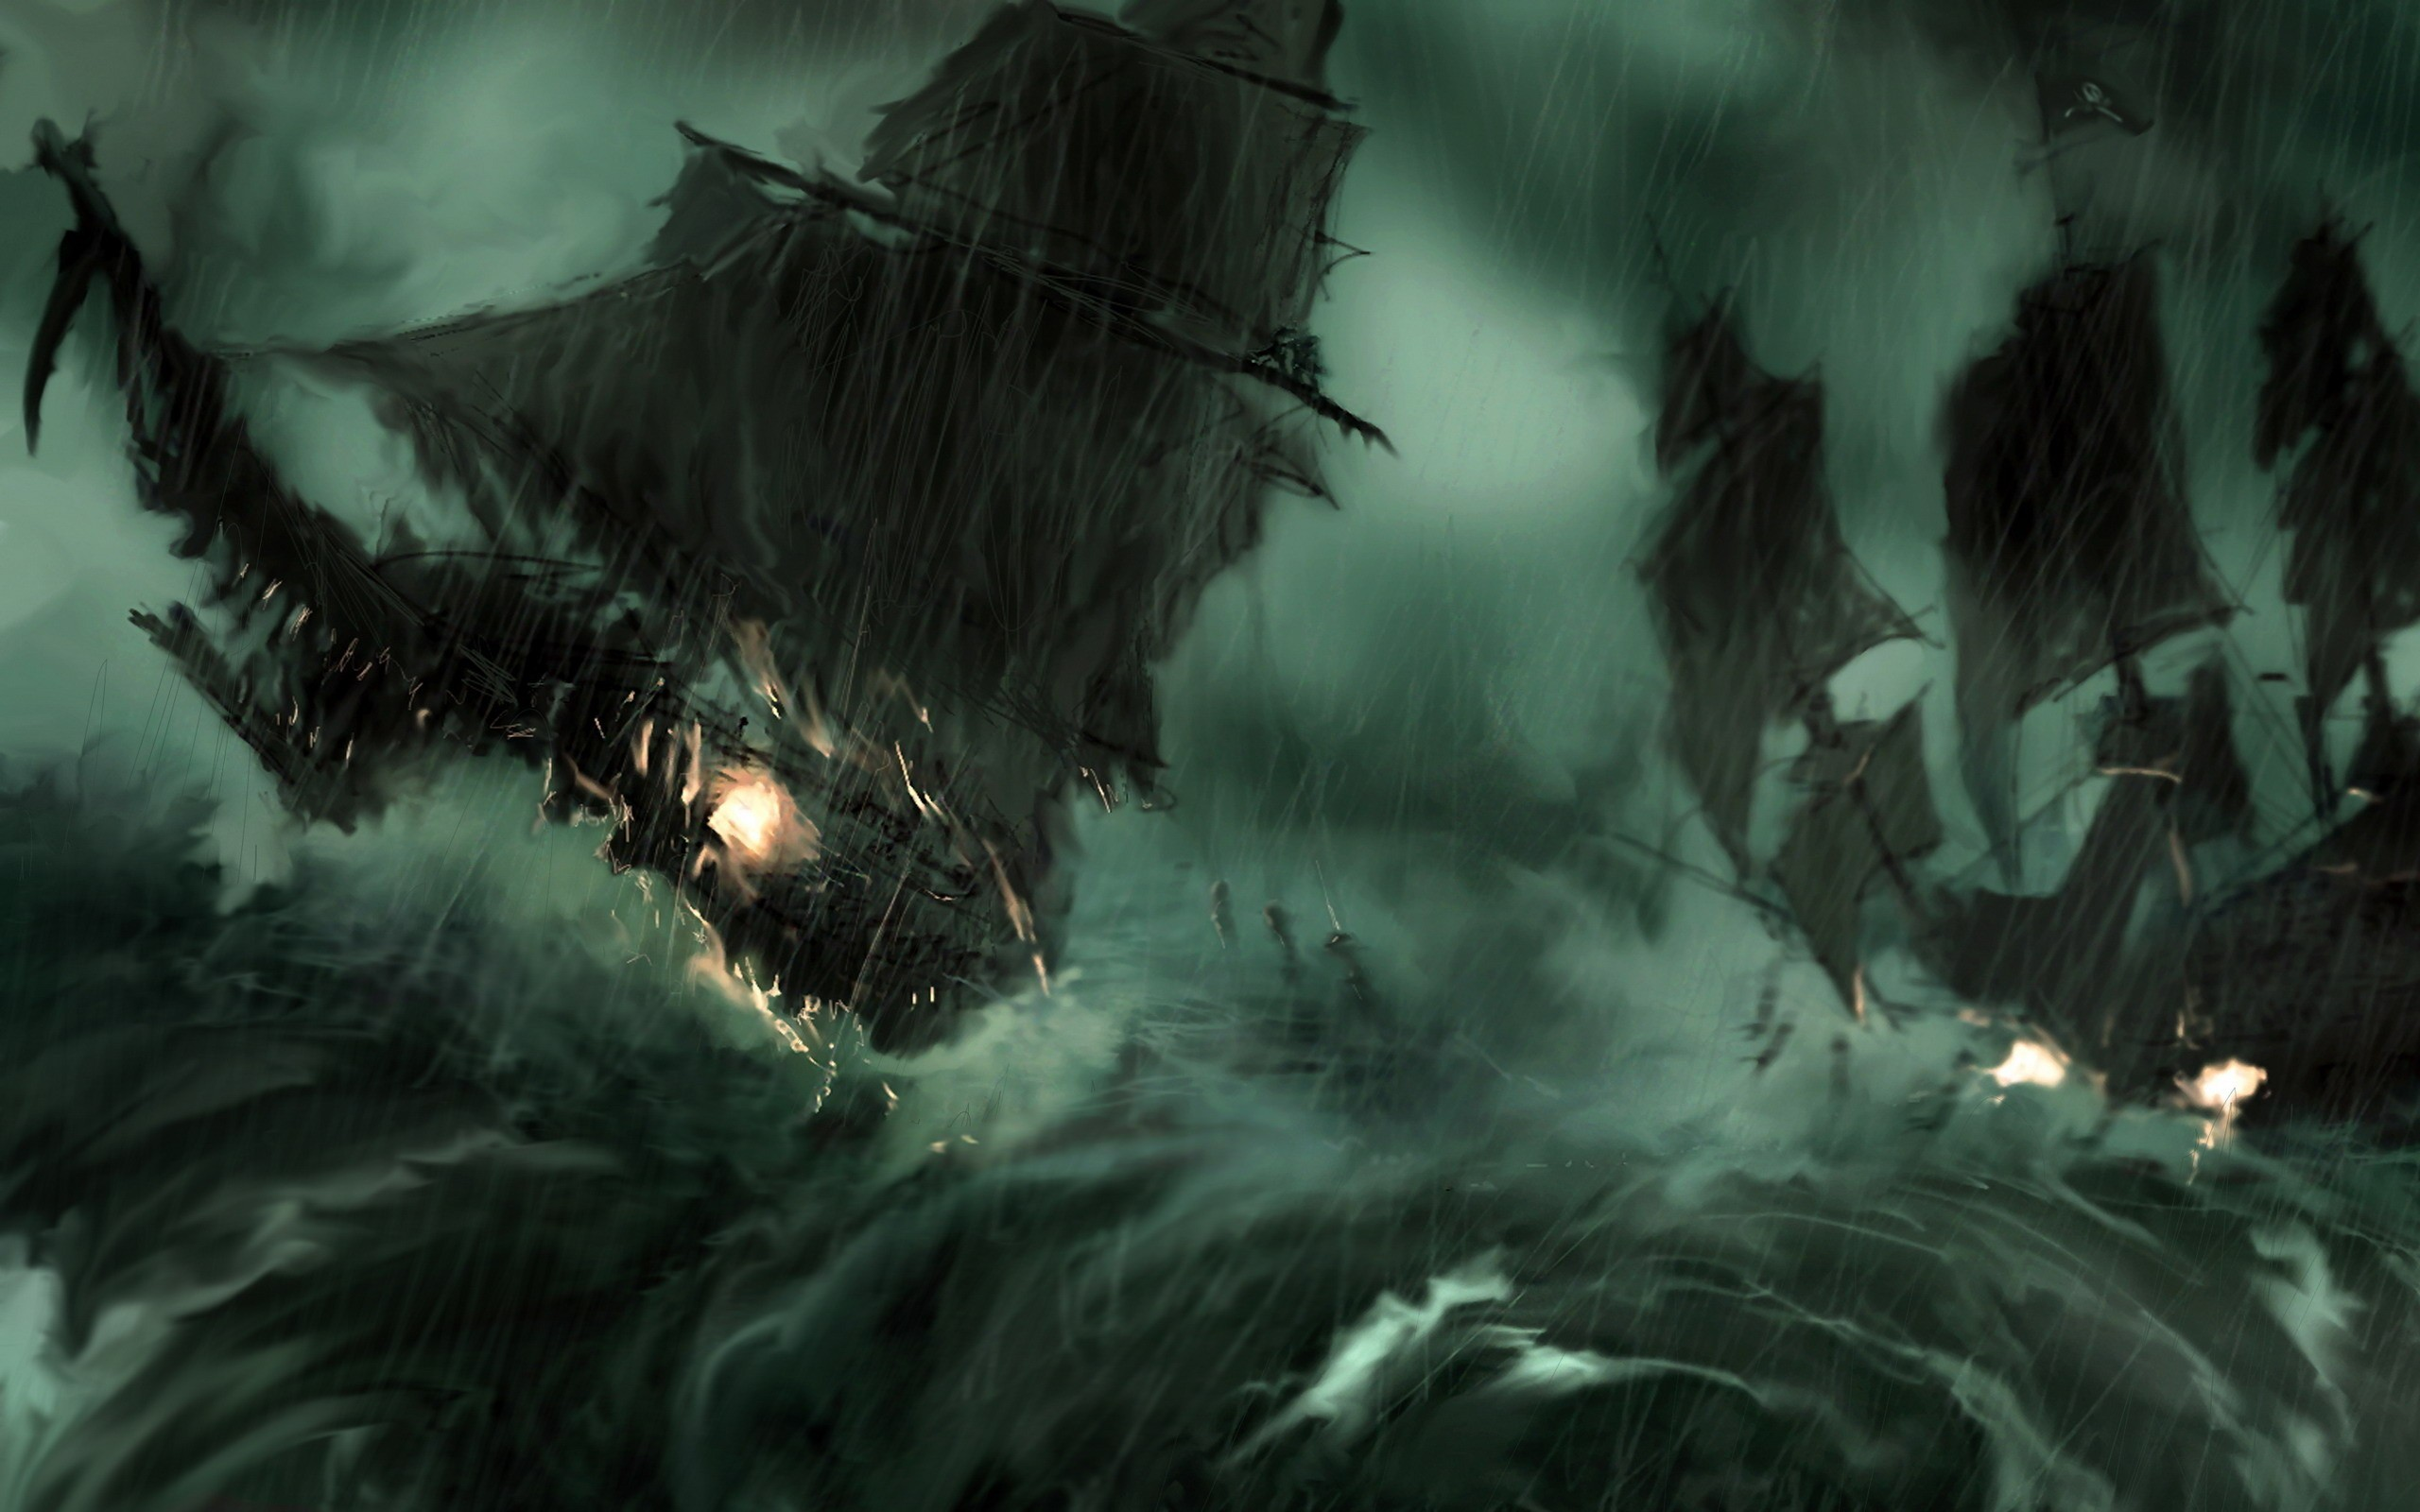 2560x1600 rain,paintings paintings rain pirate ship storm pirates of the caribbean  artwork sail ship wallpaper – Ships Wallpaper – Desktop Wallpaper